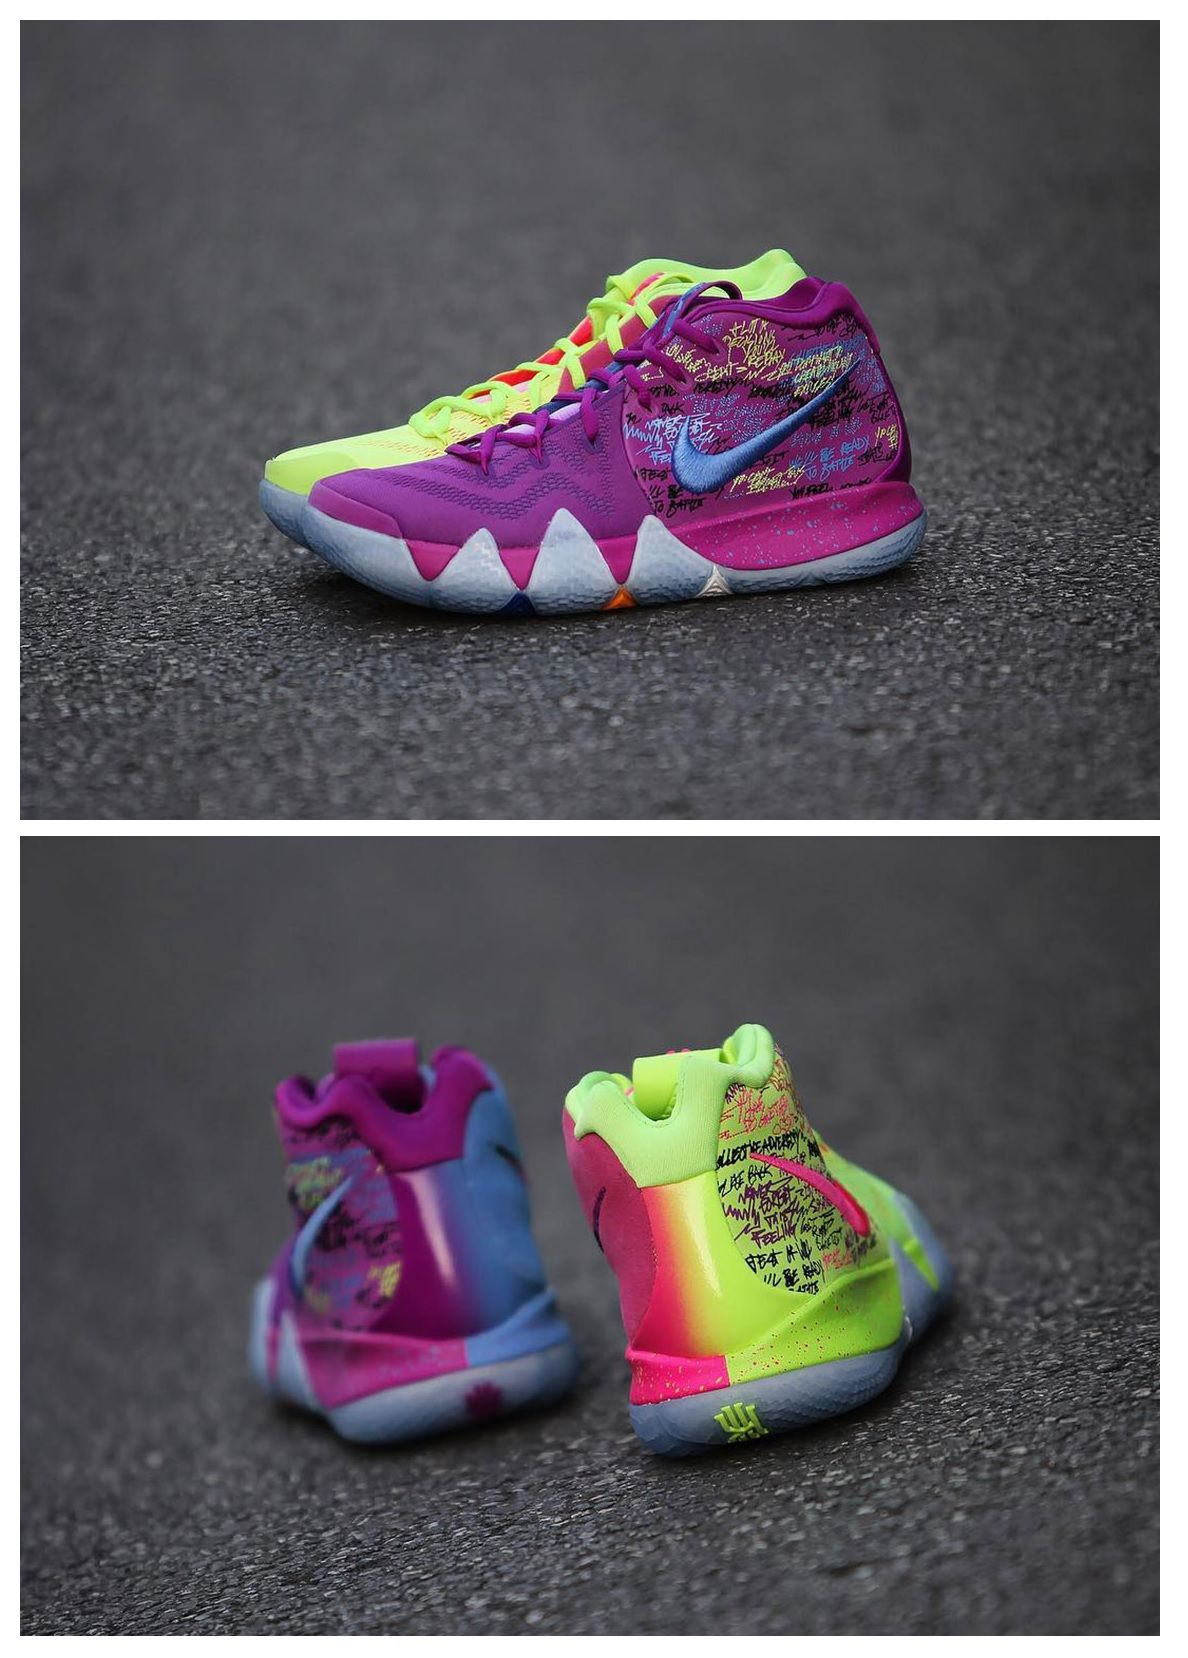 new style d73f5 c28fc Nike Kyrie 4 Confetti | The Kicks | Nike kyrie, Nike shoes, Nike